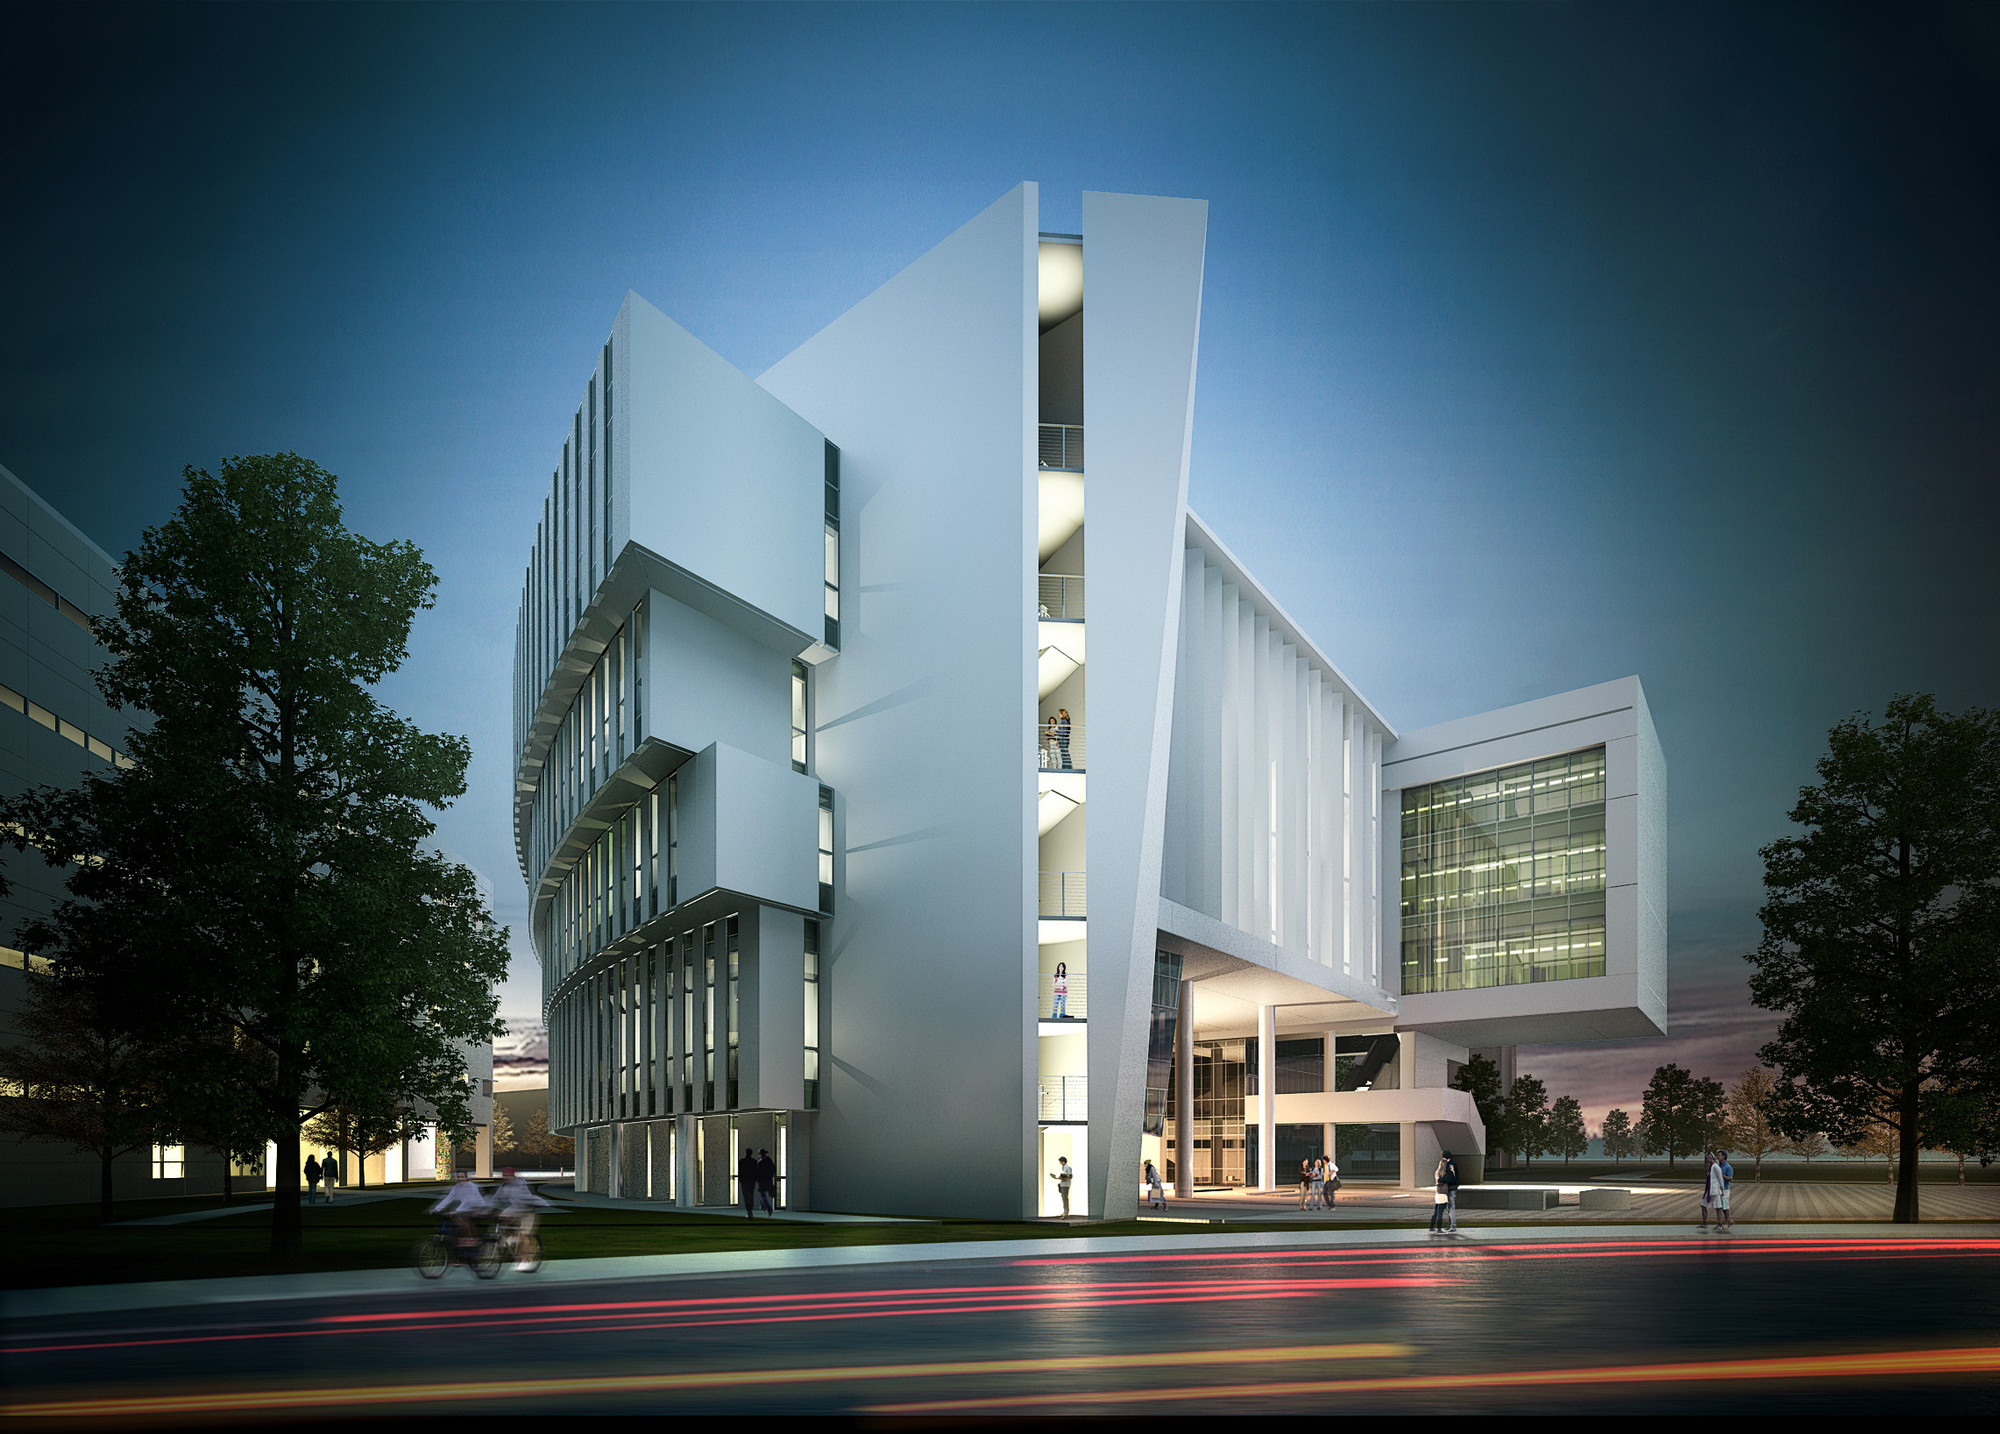 Perkins + Will Designs FIU Complex for the Research of Extreme Natural Events, South East View. Image Courtesy of Perkins + Will